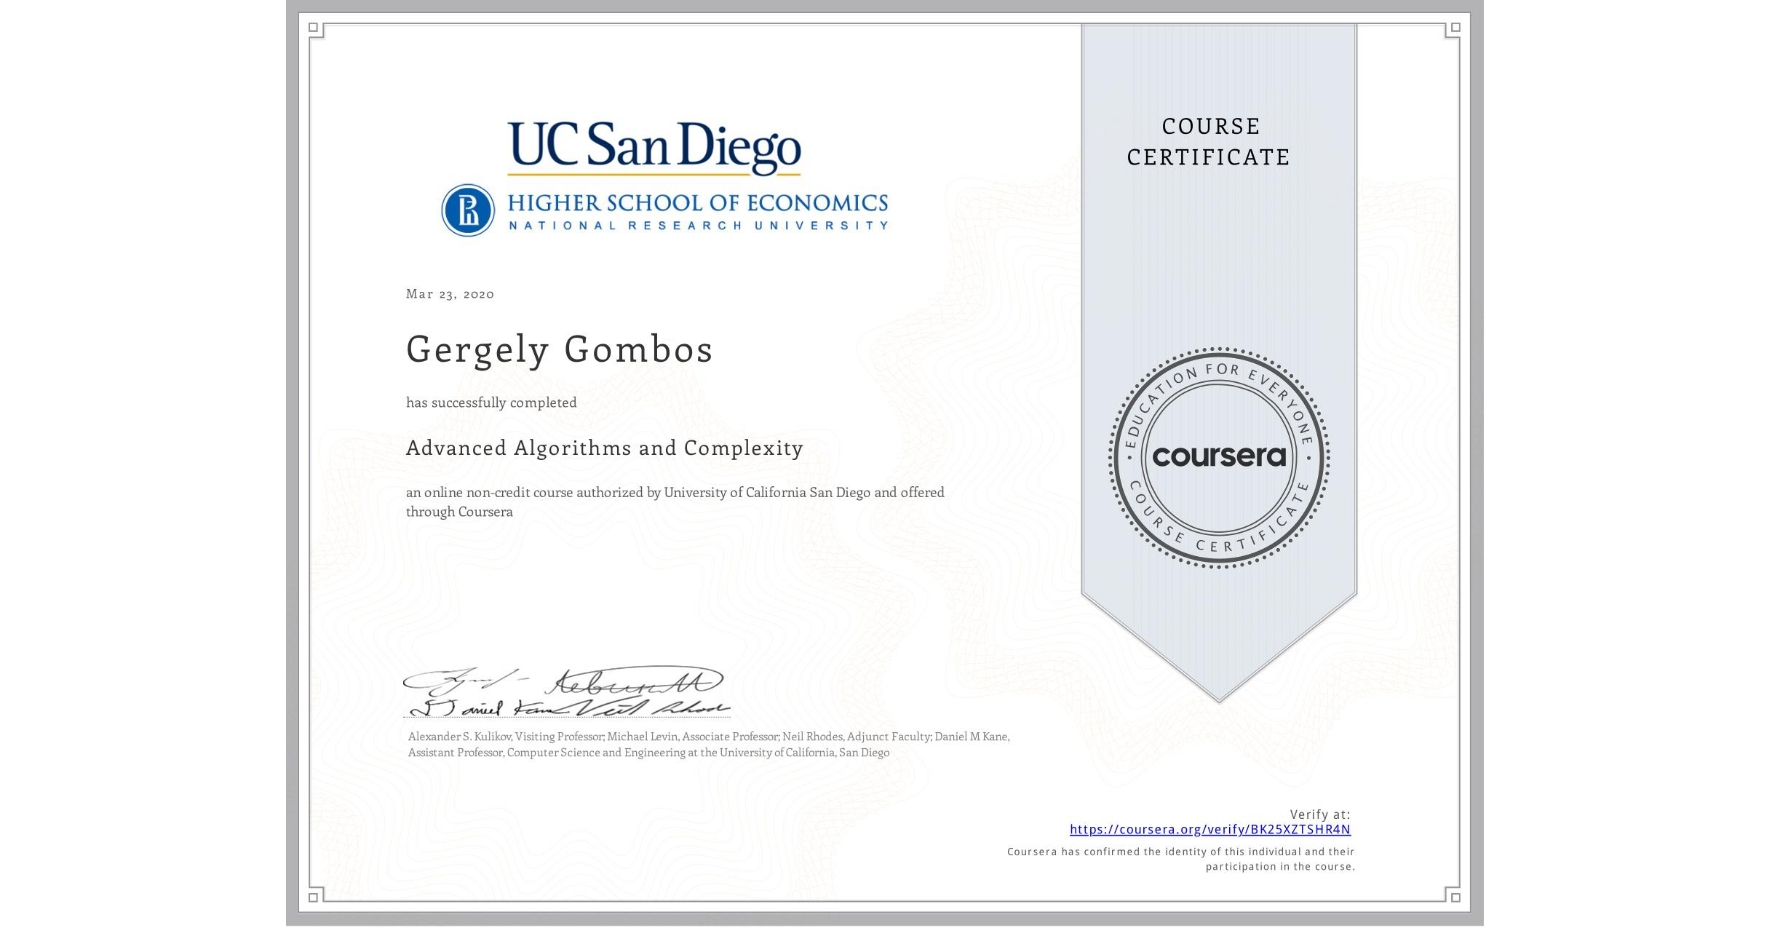 View certificate for Gergely Gombos, Advanced Algorithms and Complexity, an online non-credit course authorized by University of California San Diego & HSE University and offered through Coursera